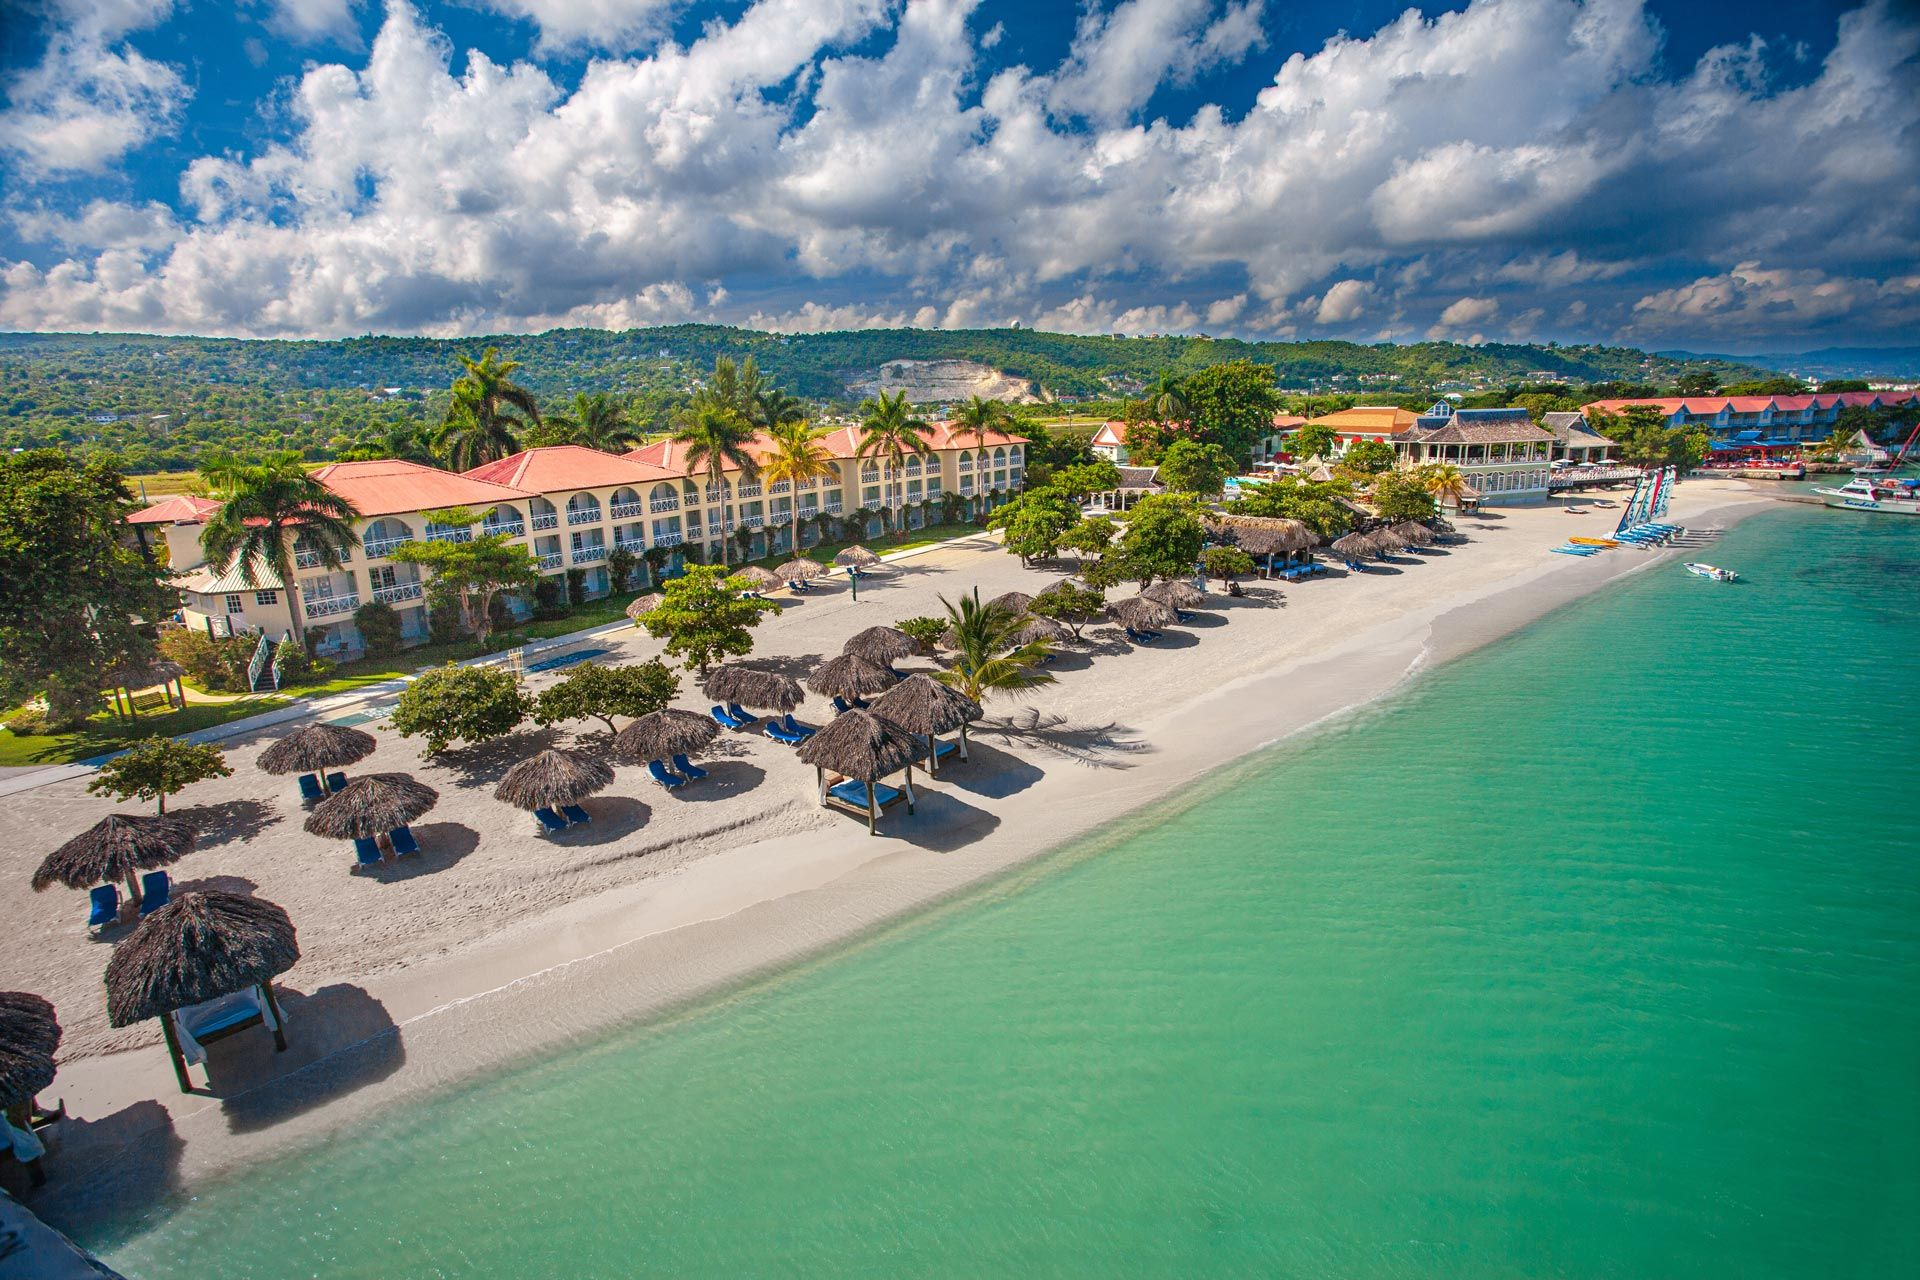 Sandals-Montego-Bay-SMB-Aerial-View